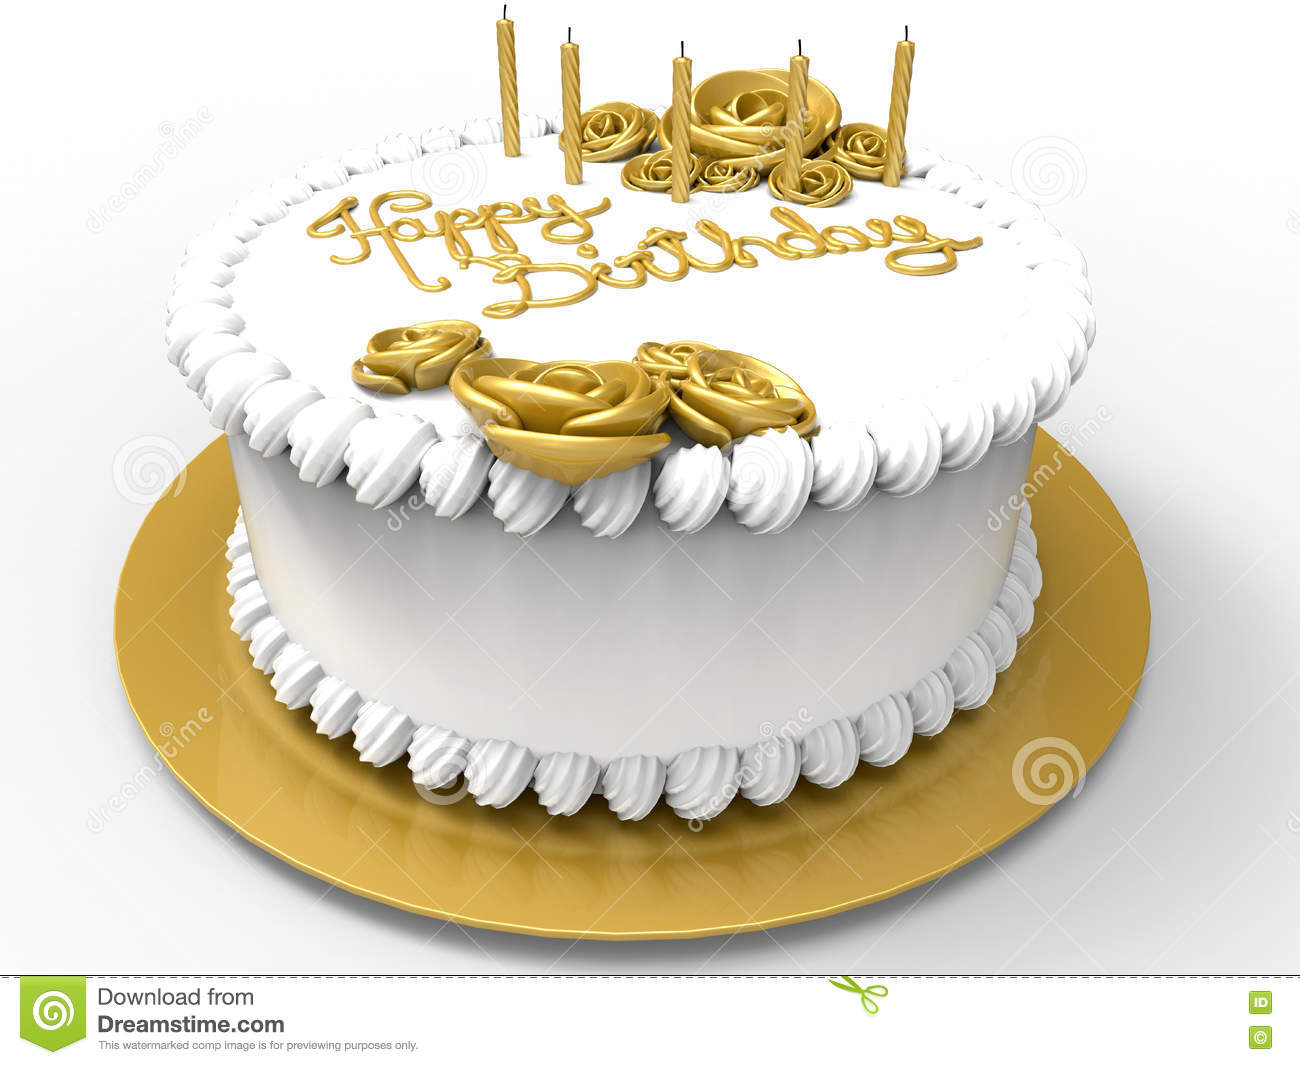 Happy Birthday Cake Stock Illustration Illustration Of White 76487449